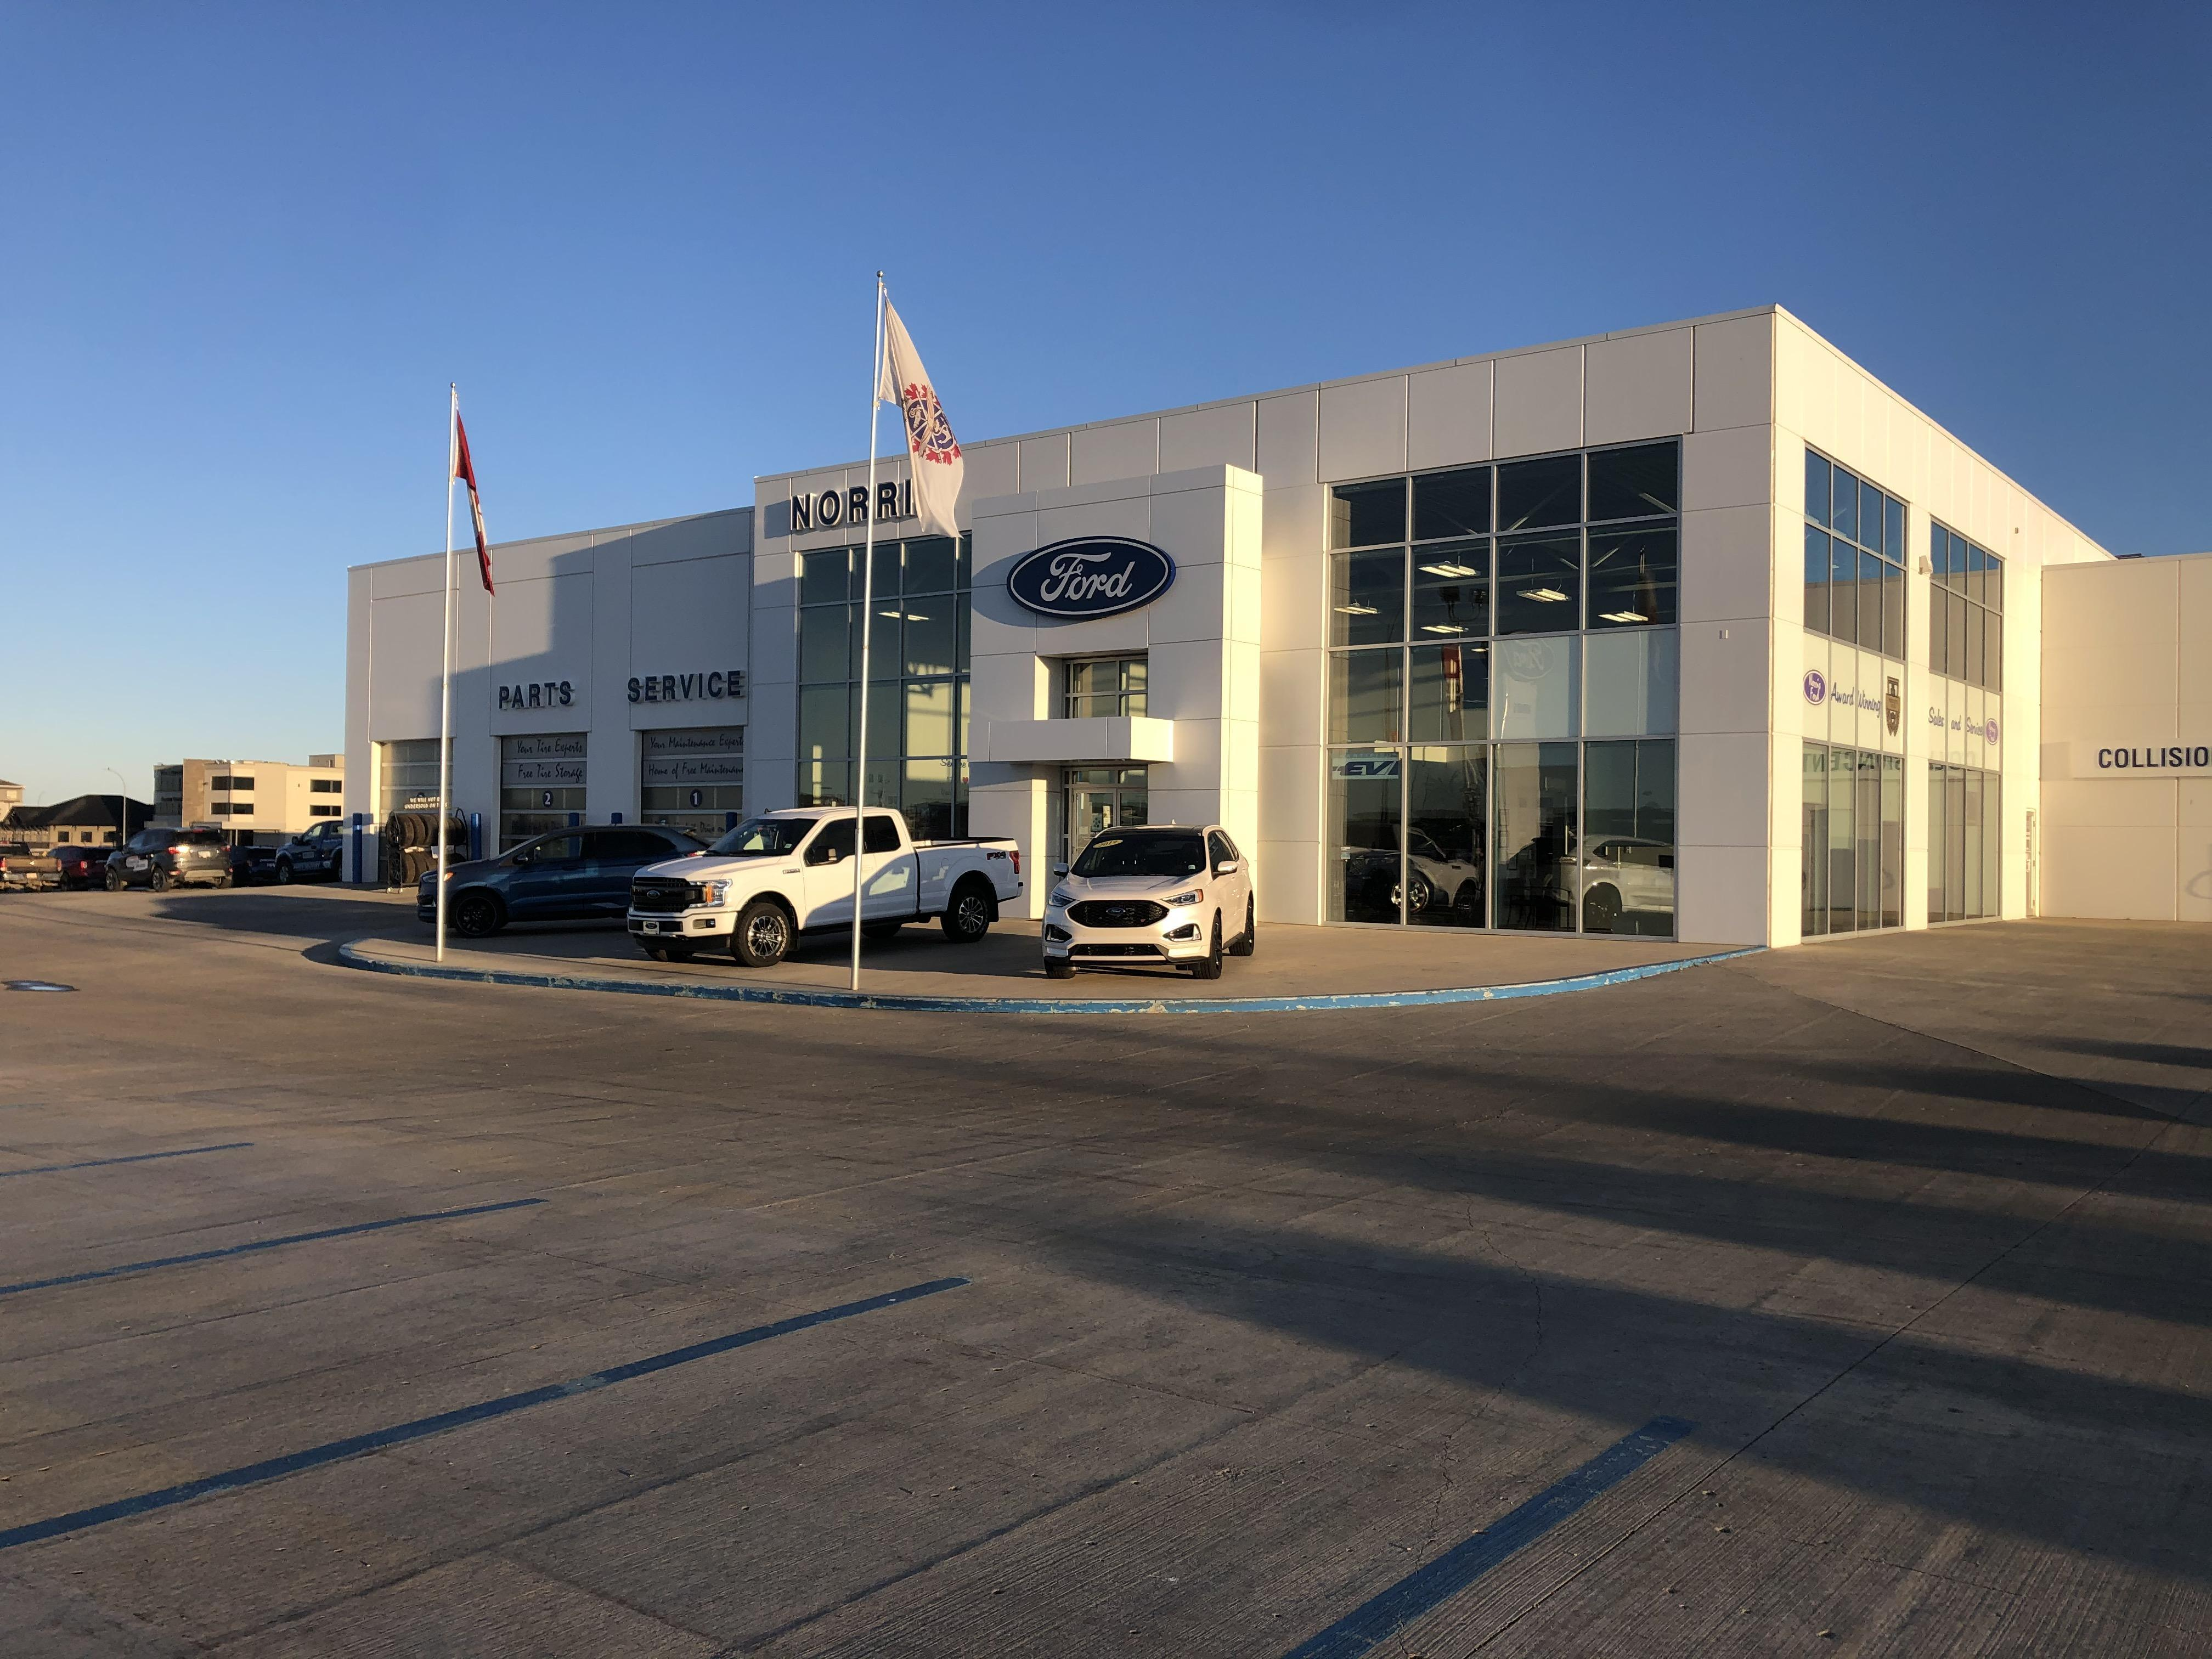 Ford Testimonials at Norris Ford Sales